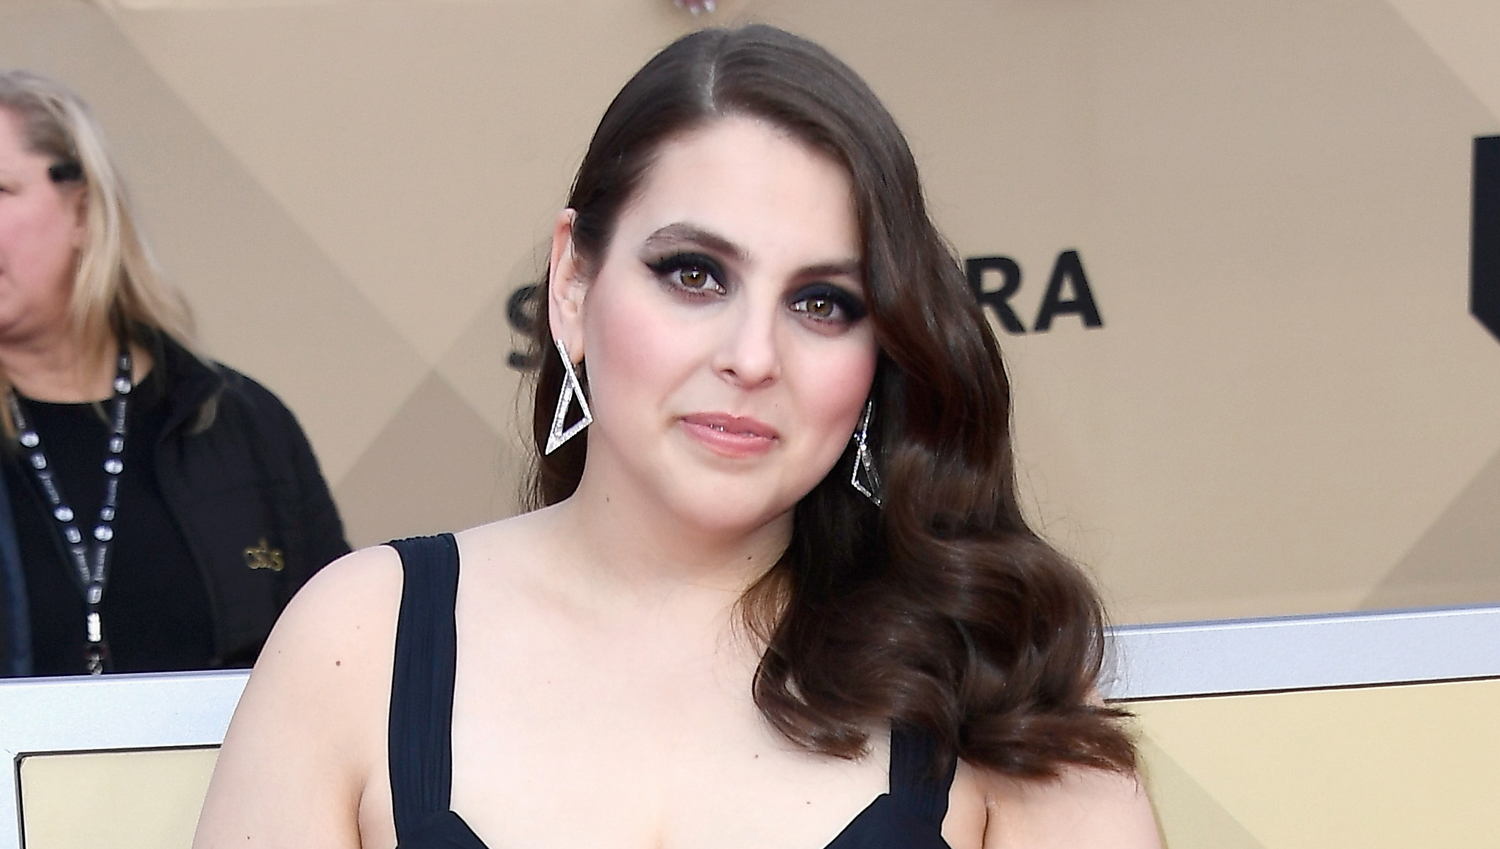 cf2522bb32a Beanie Feldstein Opens Up About Death of Brother Jordan for First Time